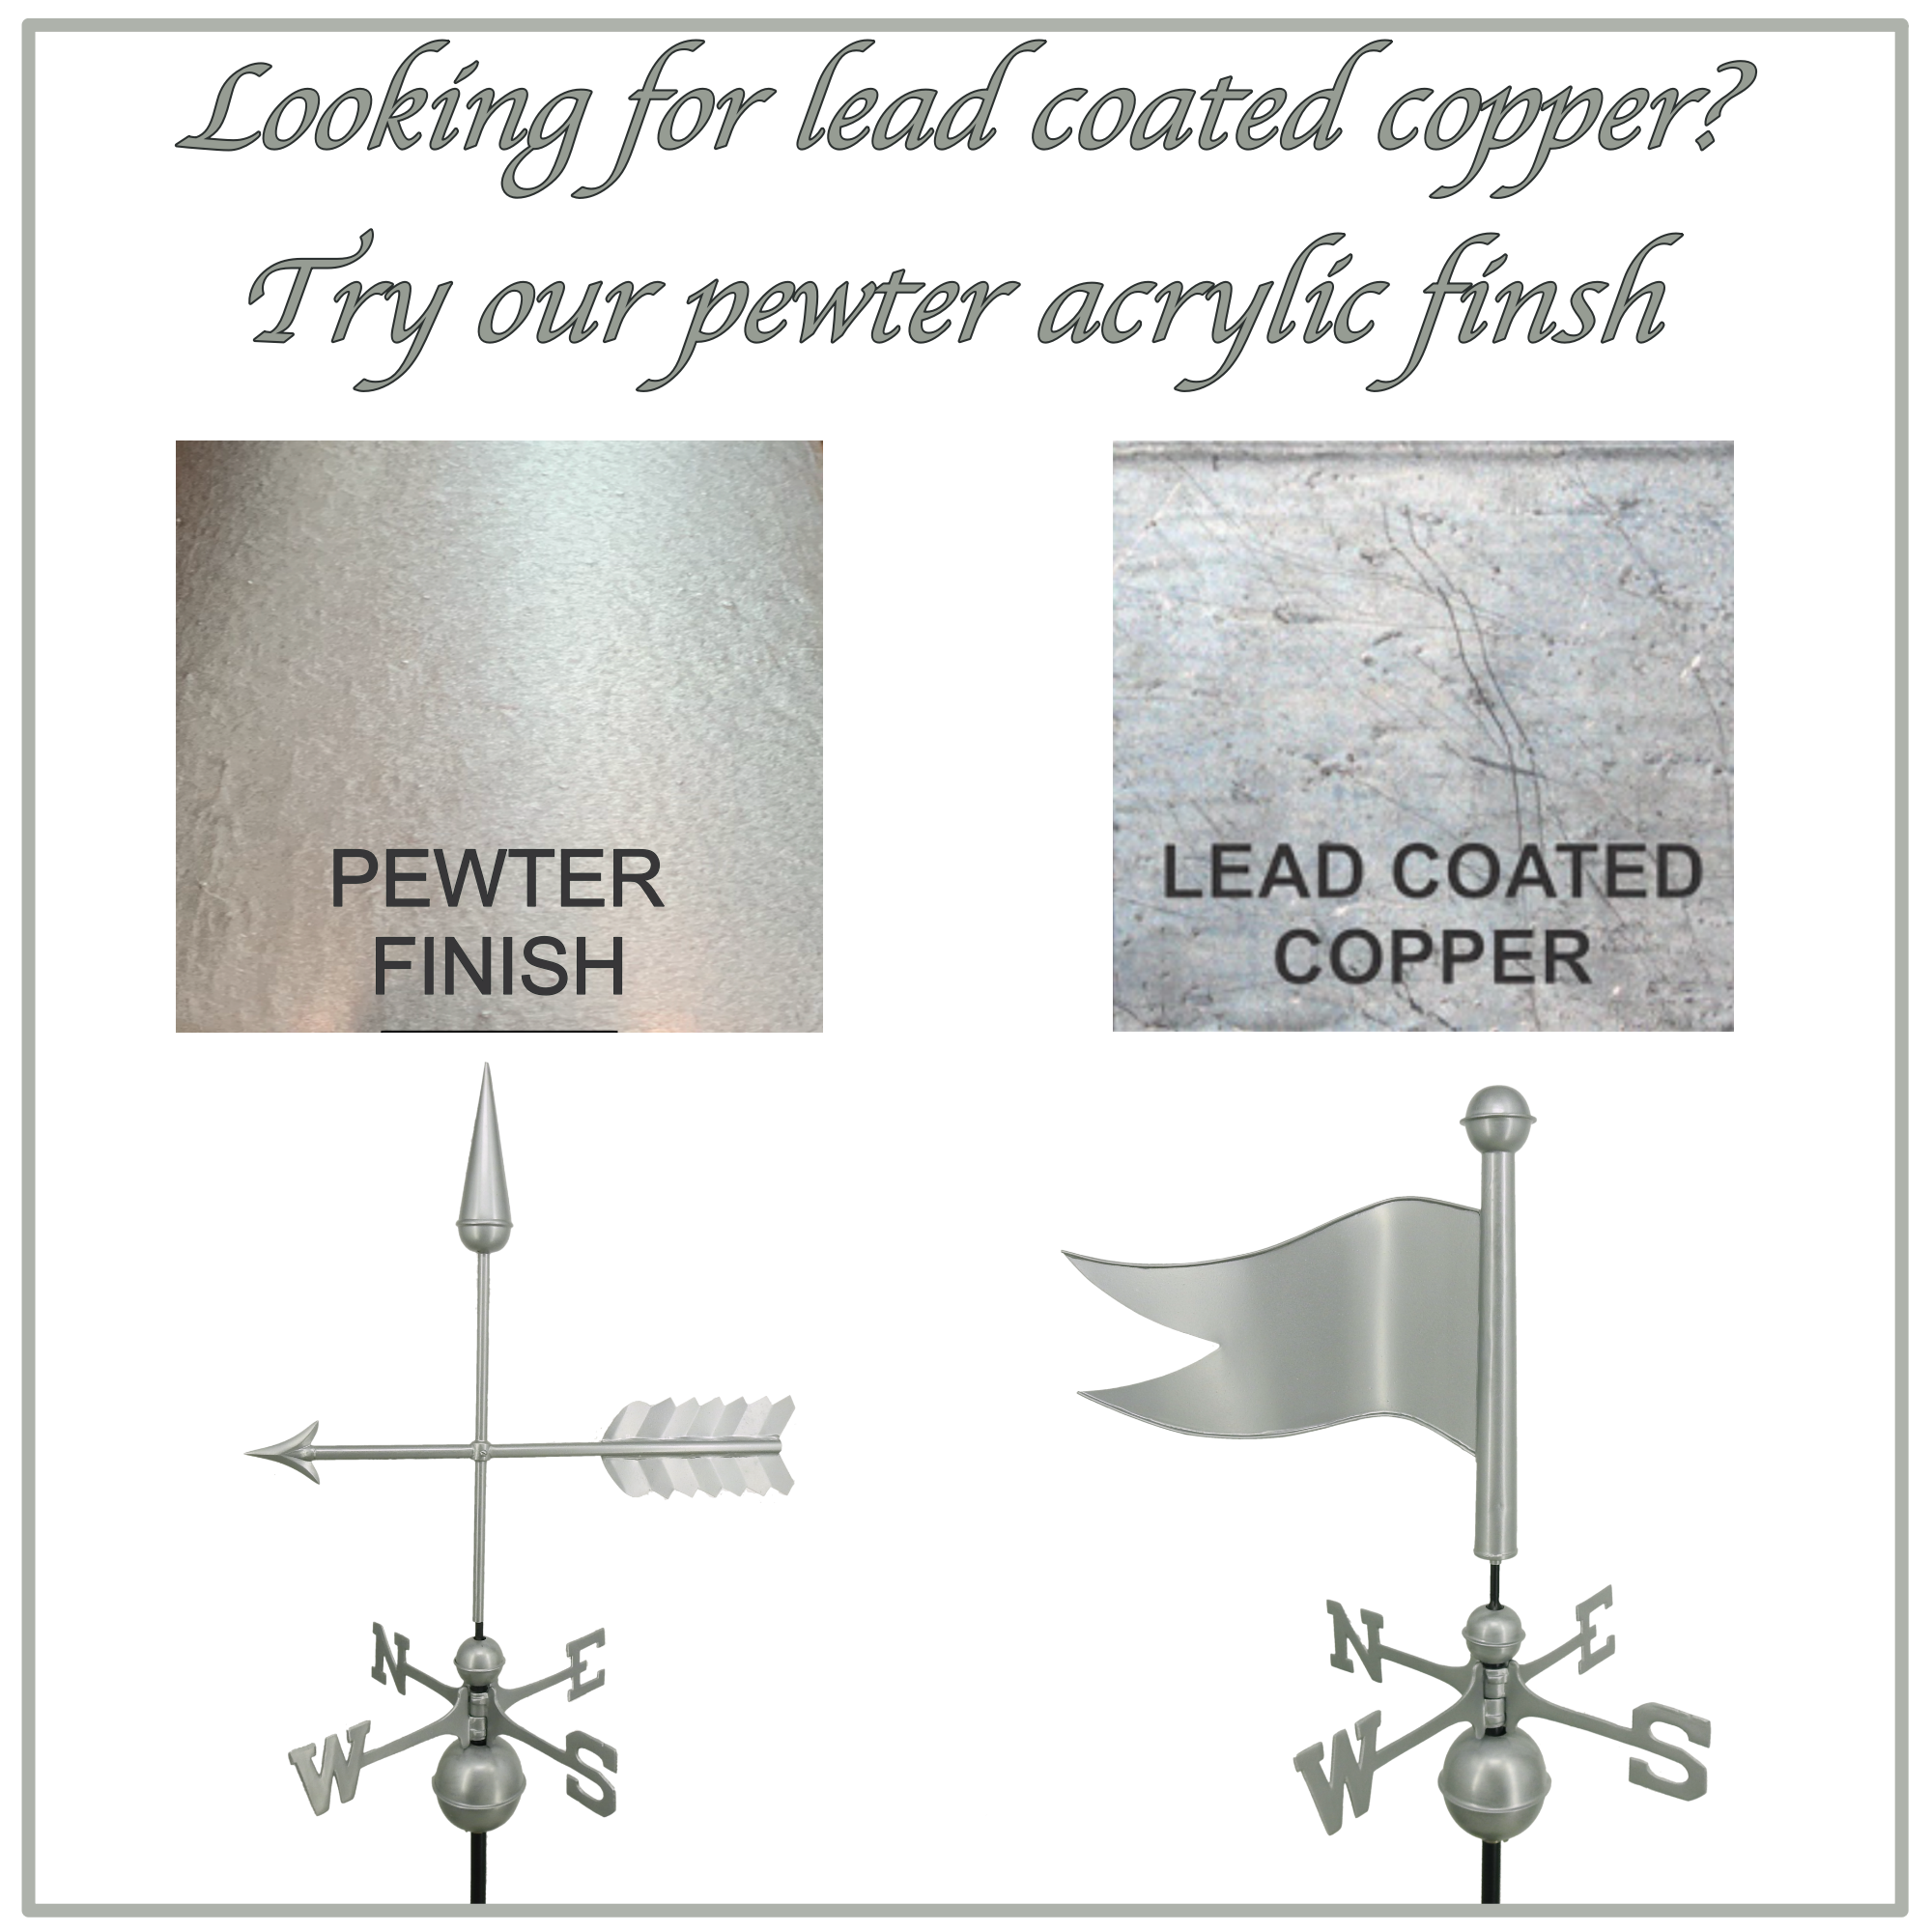 lead-coated-copper.png